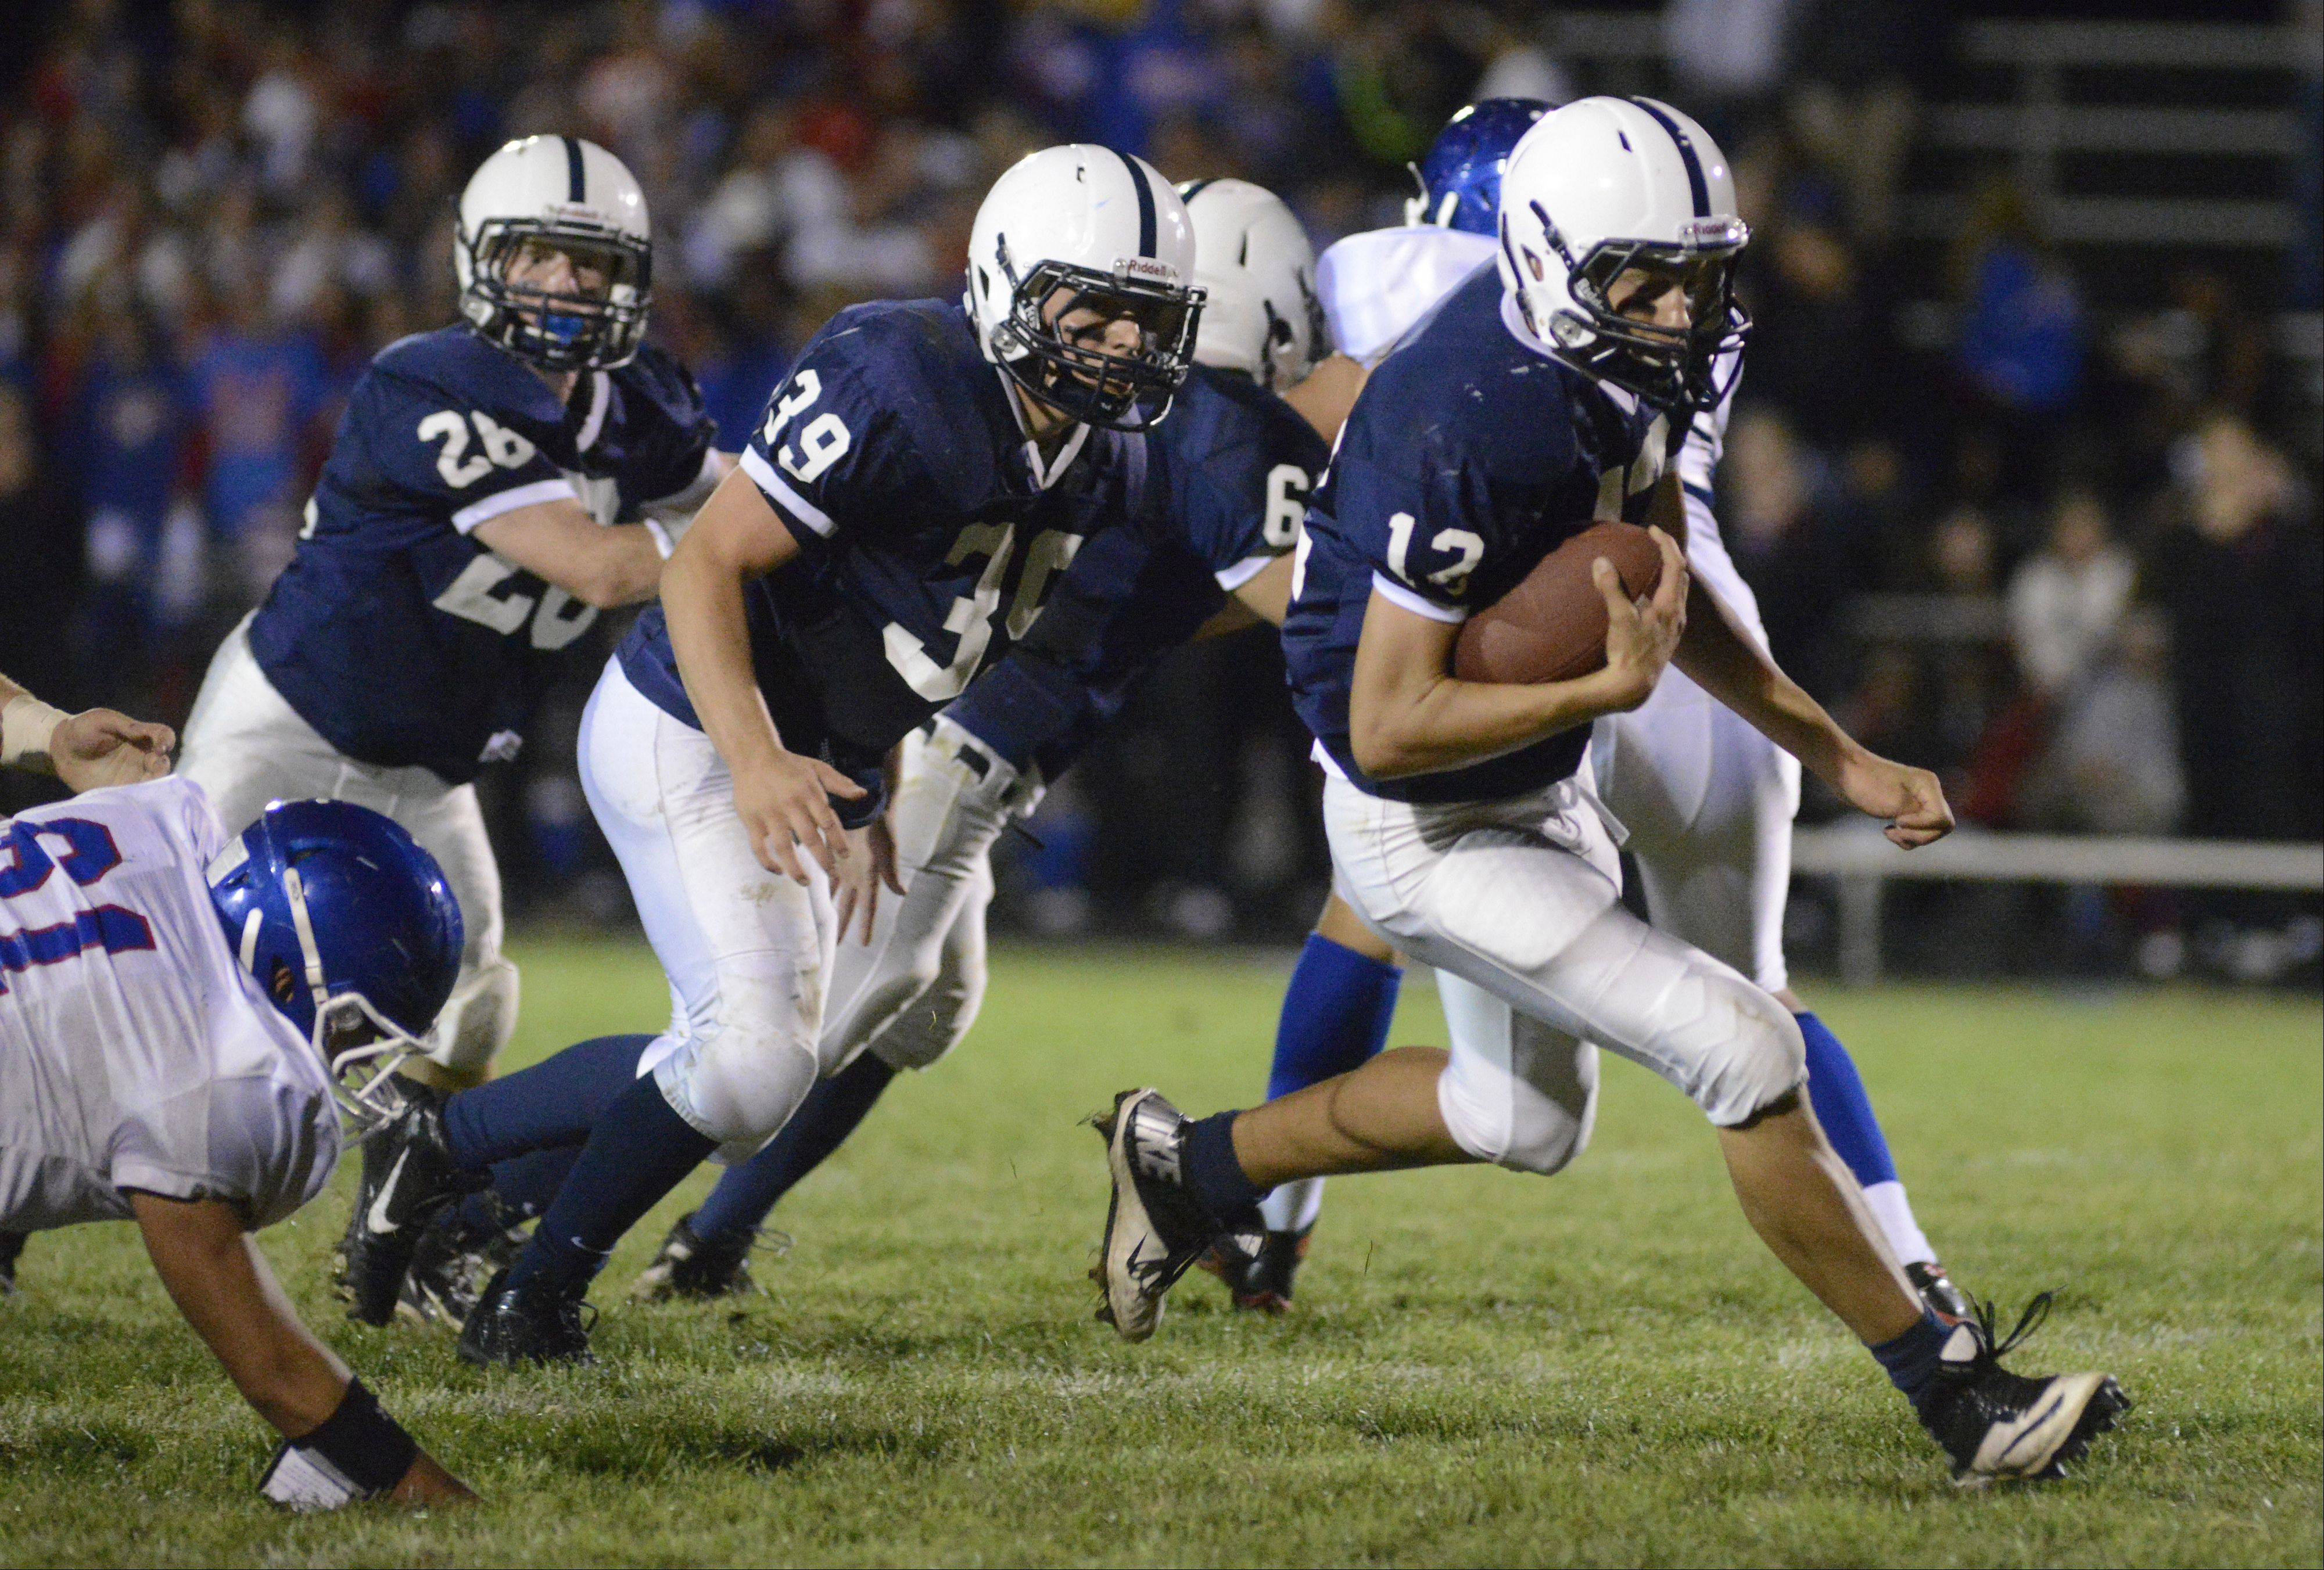 Cary-Grove quarterback Jason Gregoire runs up the center of the field.